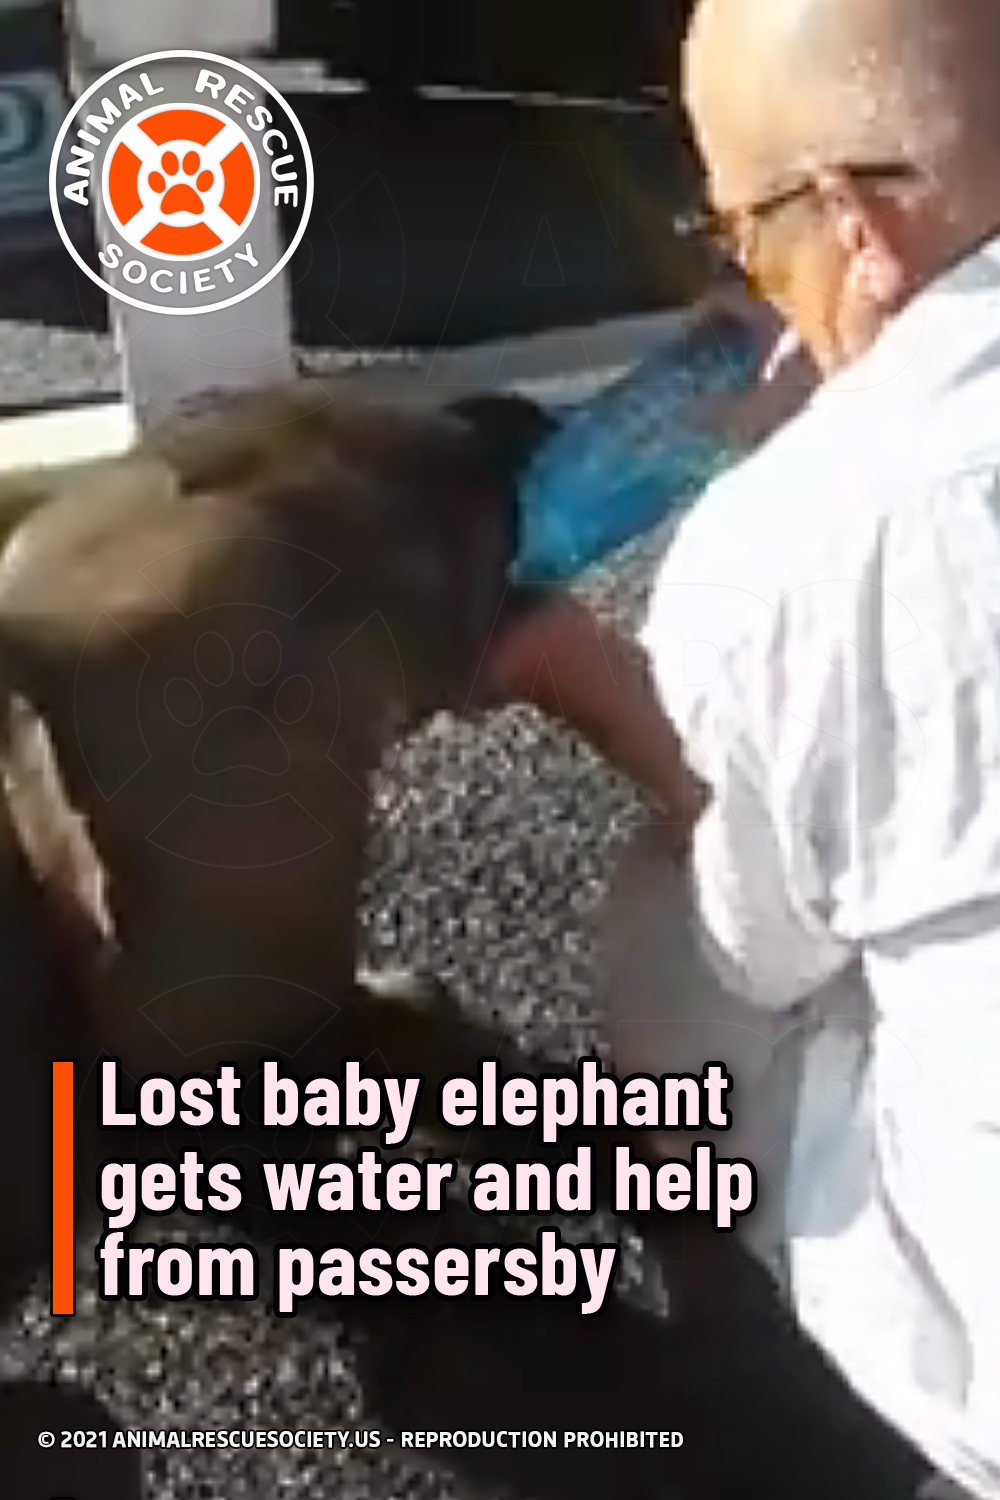 Lost baby elephant gets water and help from passersby